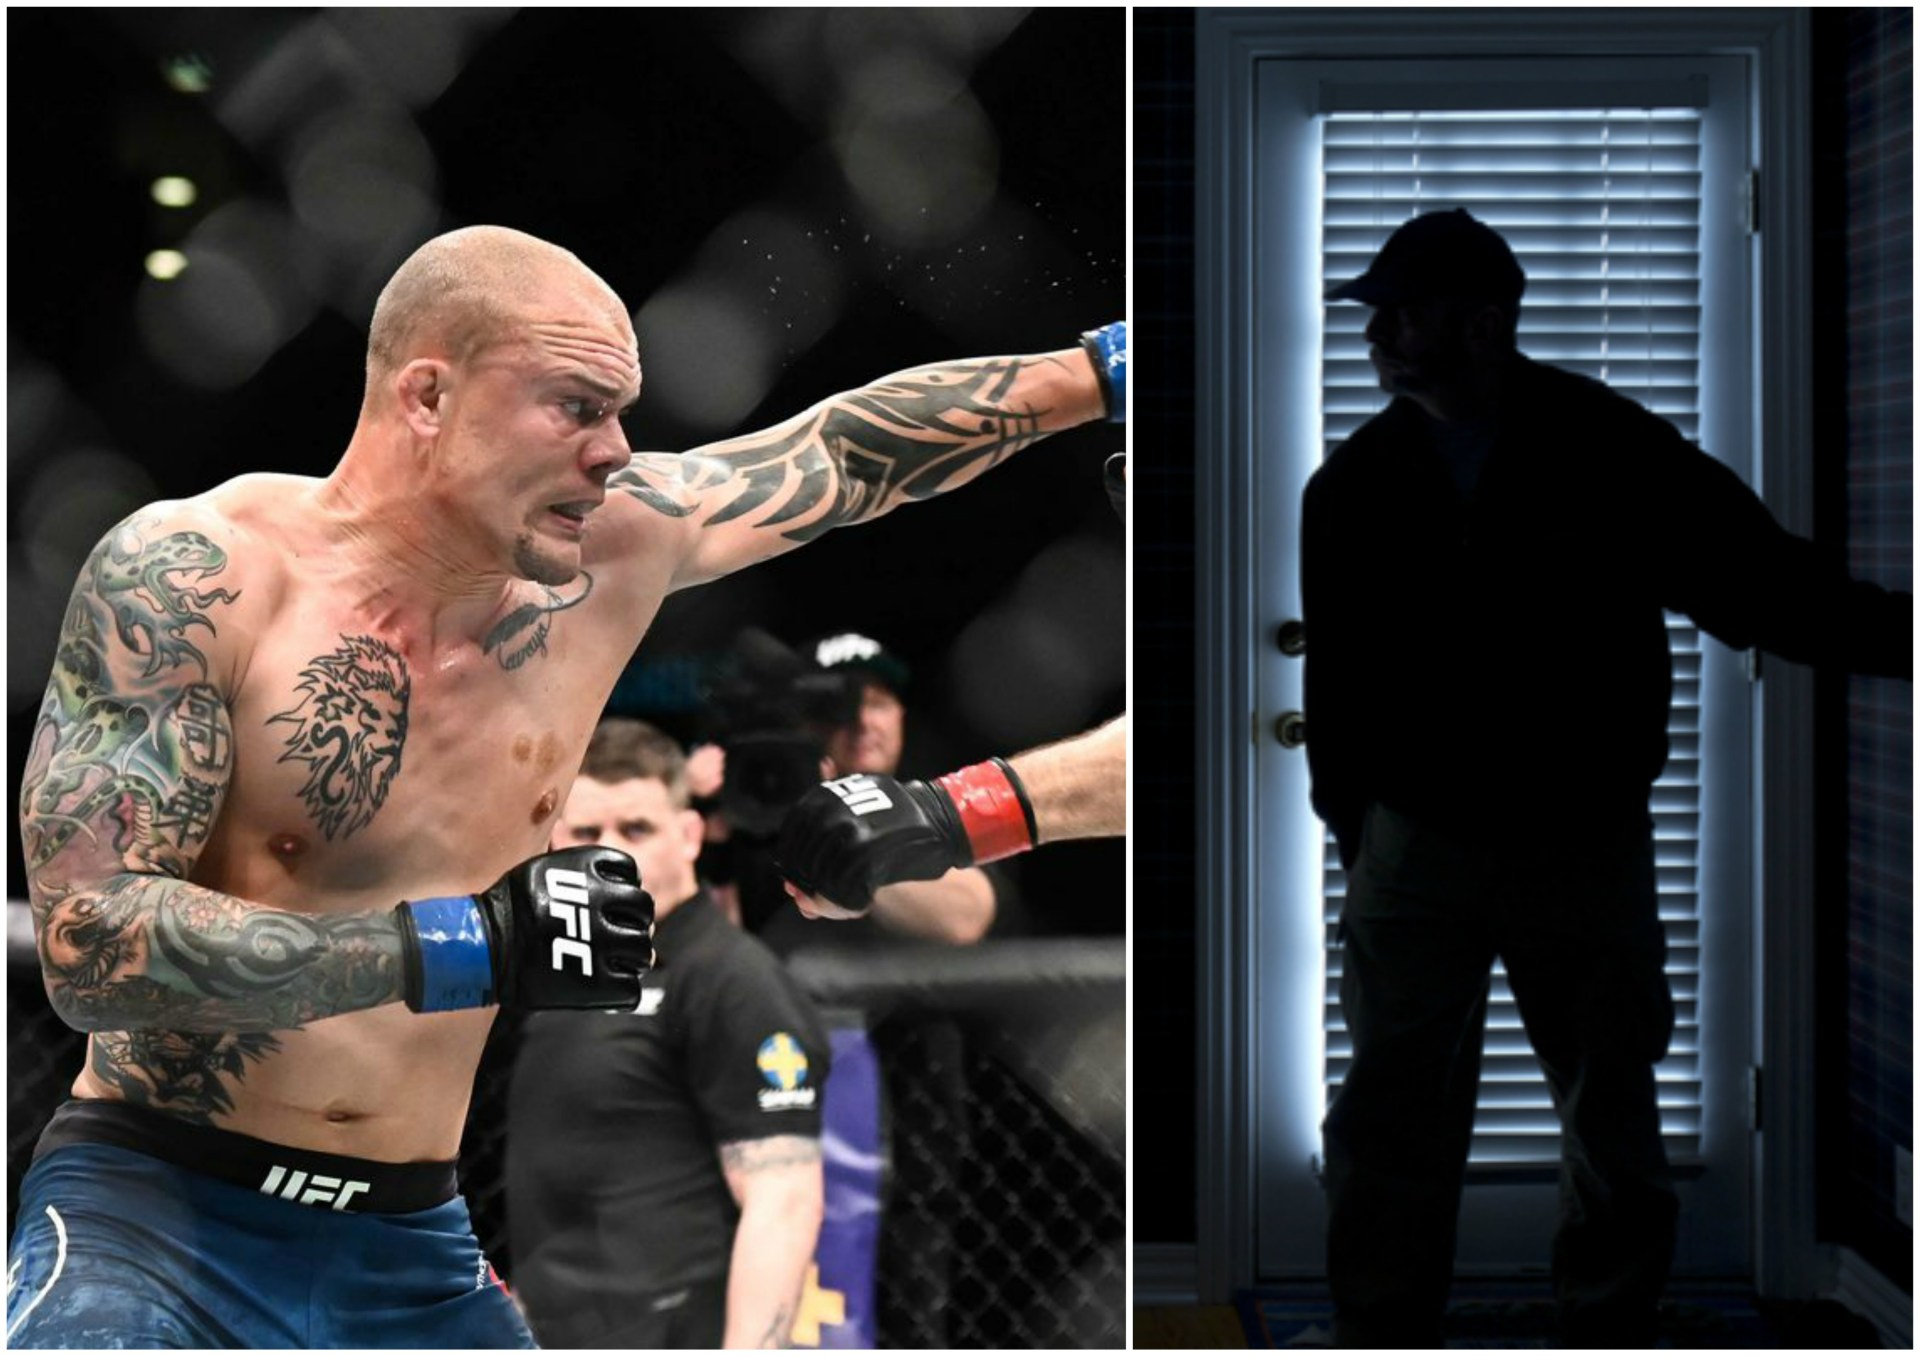 UFC News: LHW contender Anthony Smith reveals 'terrifying' encounter with home invader - Anthony Smith